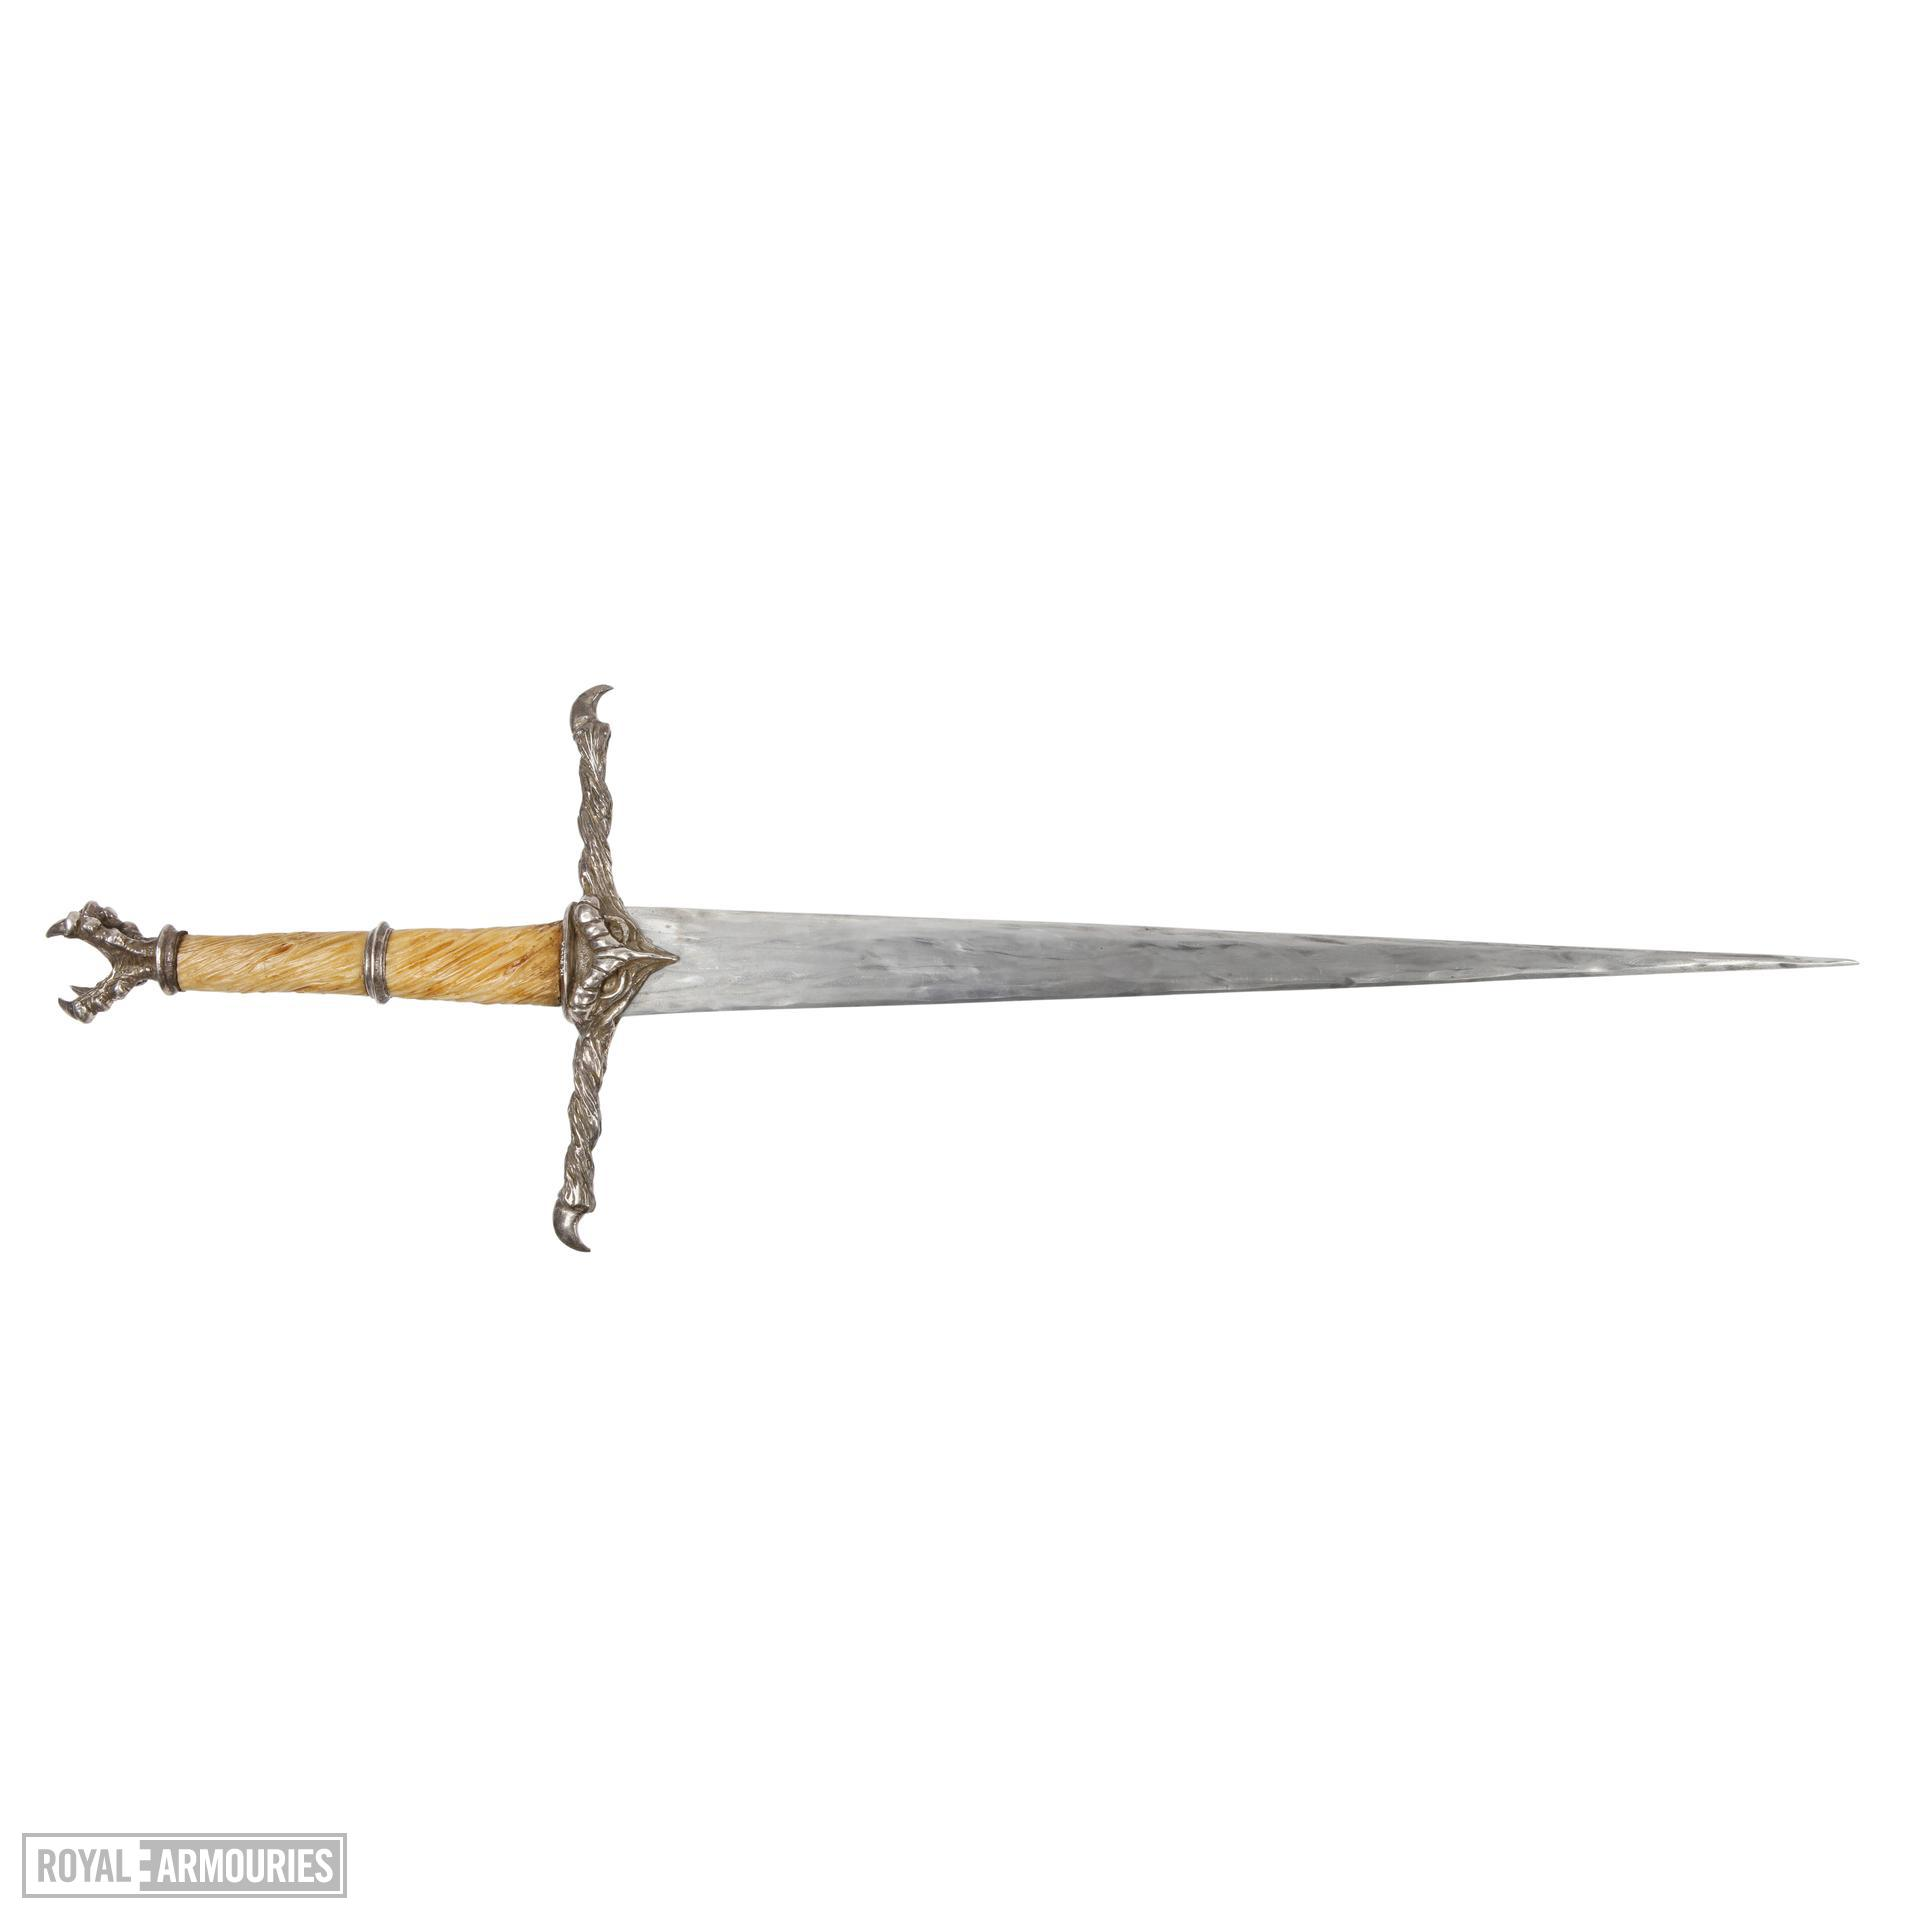 Durza's (Robert Carlyle) hero sword from film Eragon (2006). English, 2006 (IX.5643)